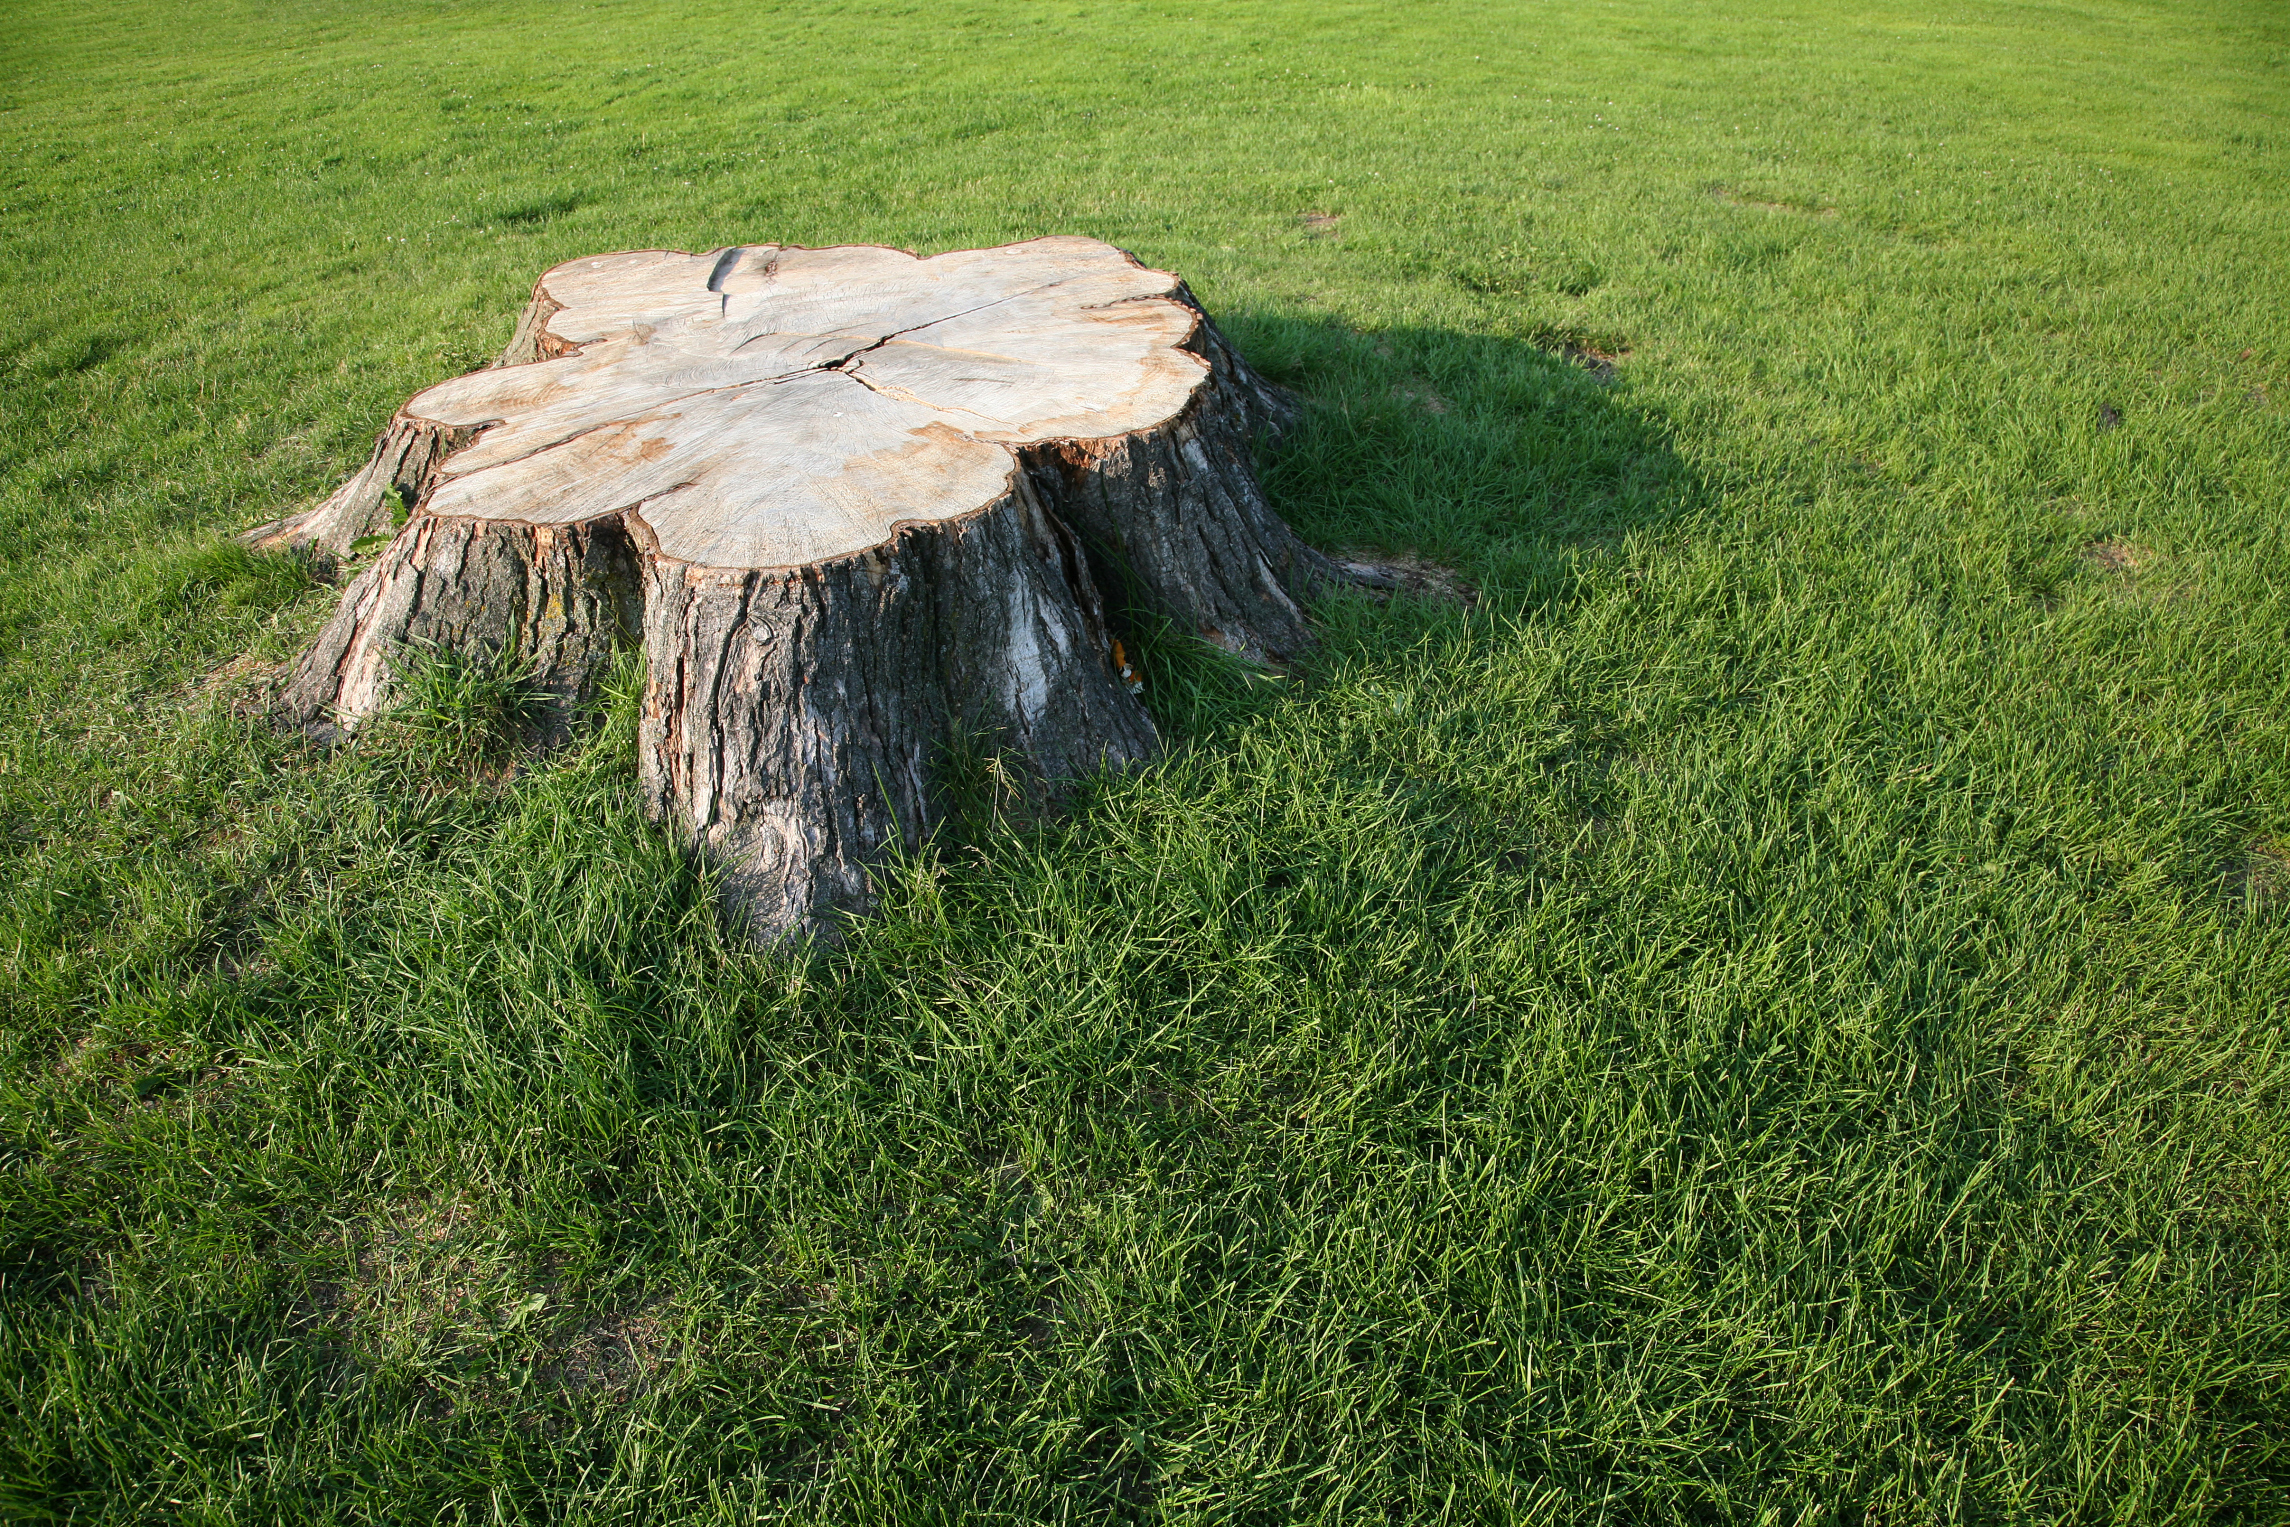 Home Remedies to Kill a Tree Stump | Home Guides | SF Gate